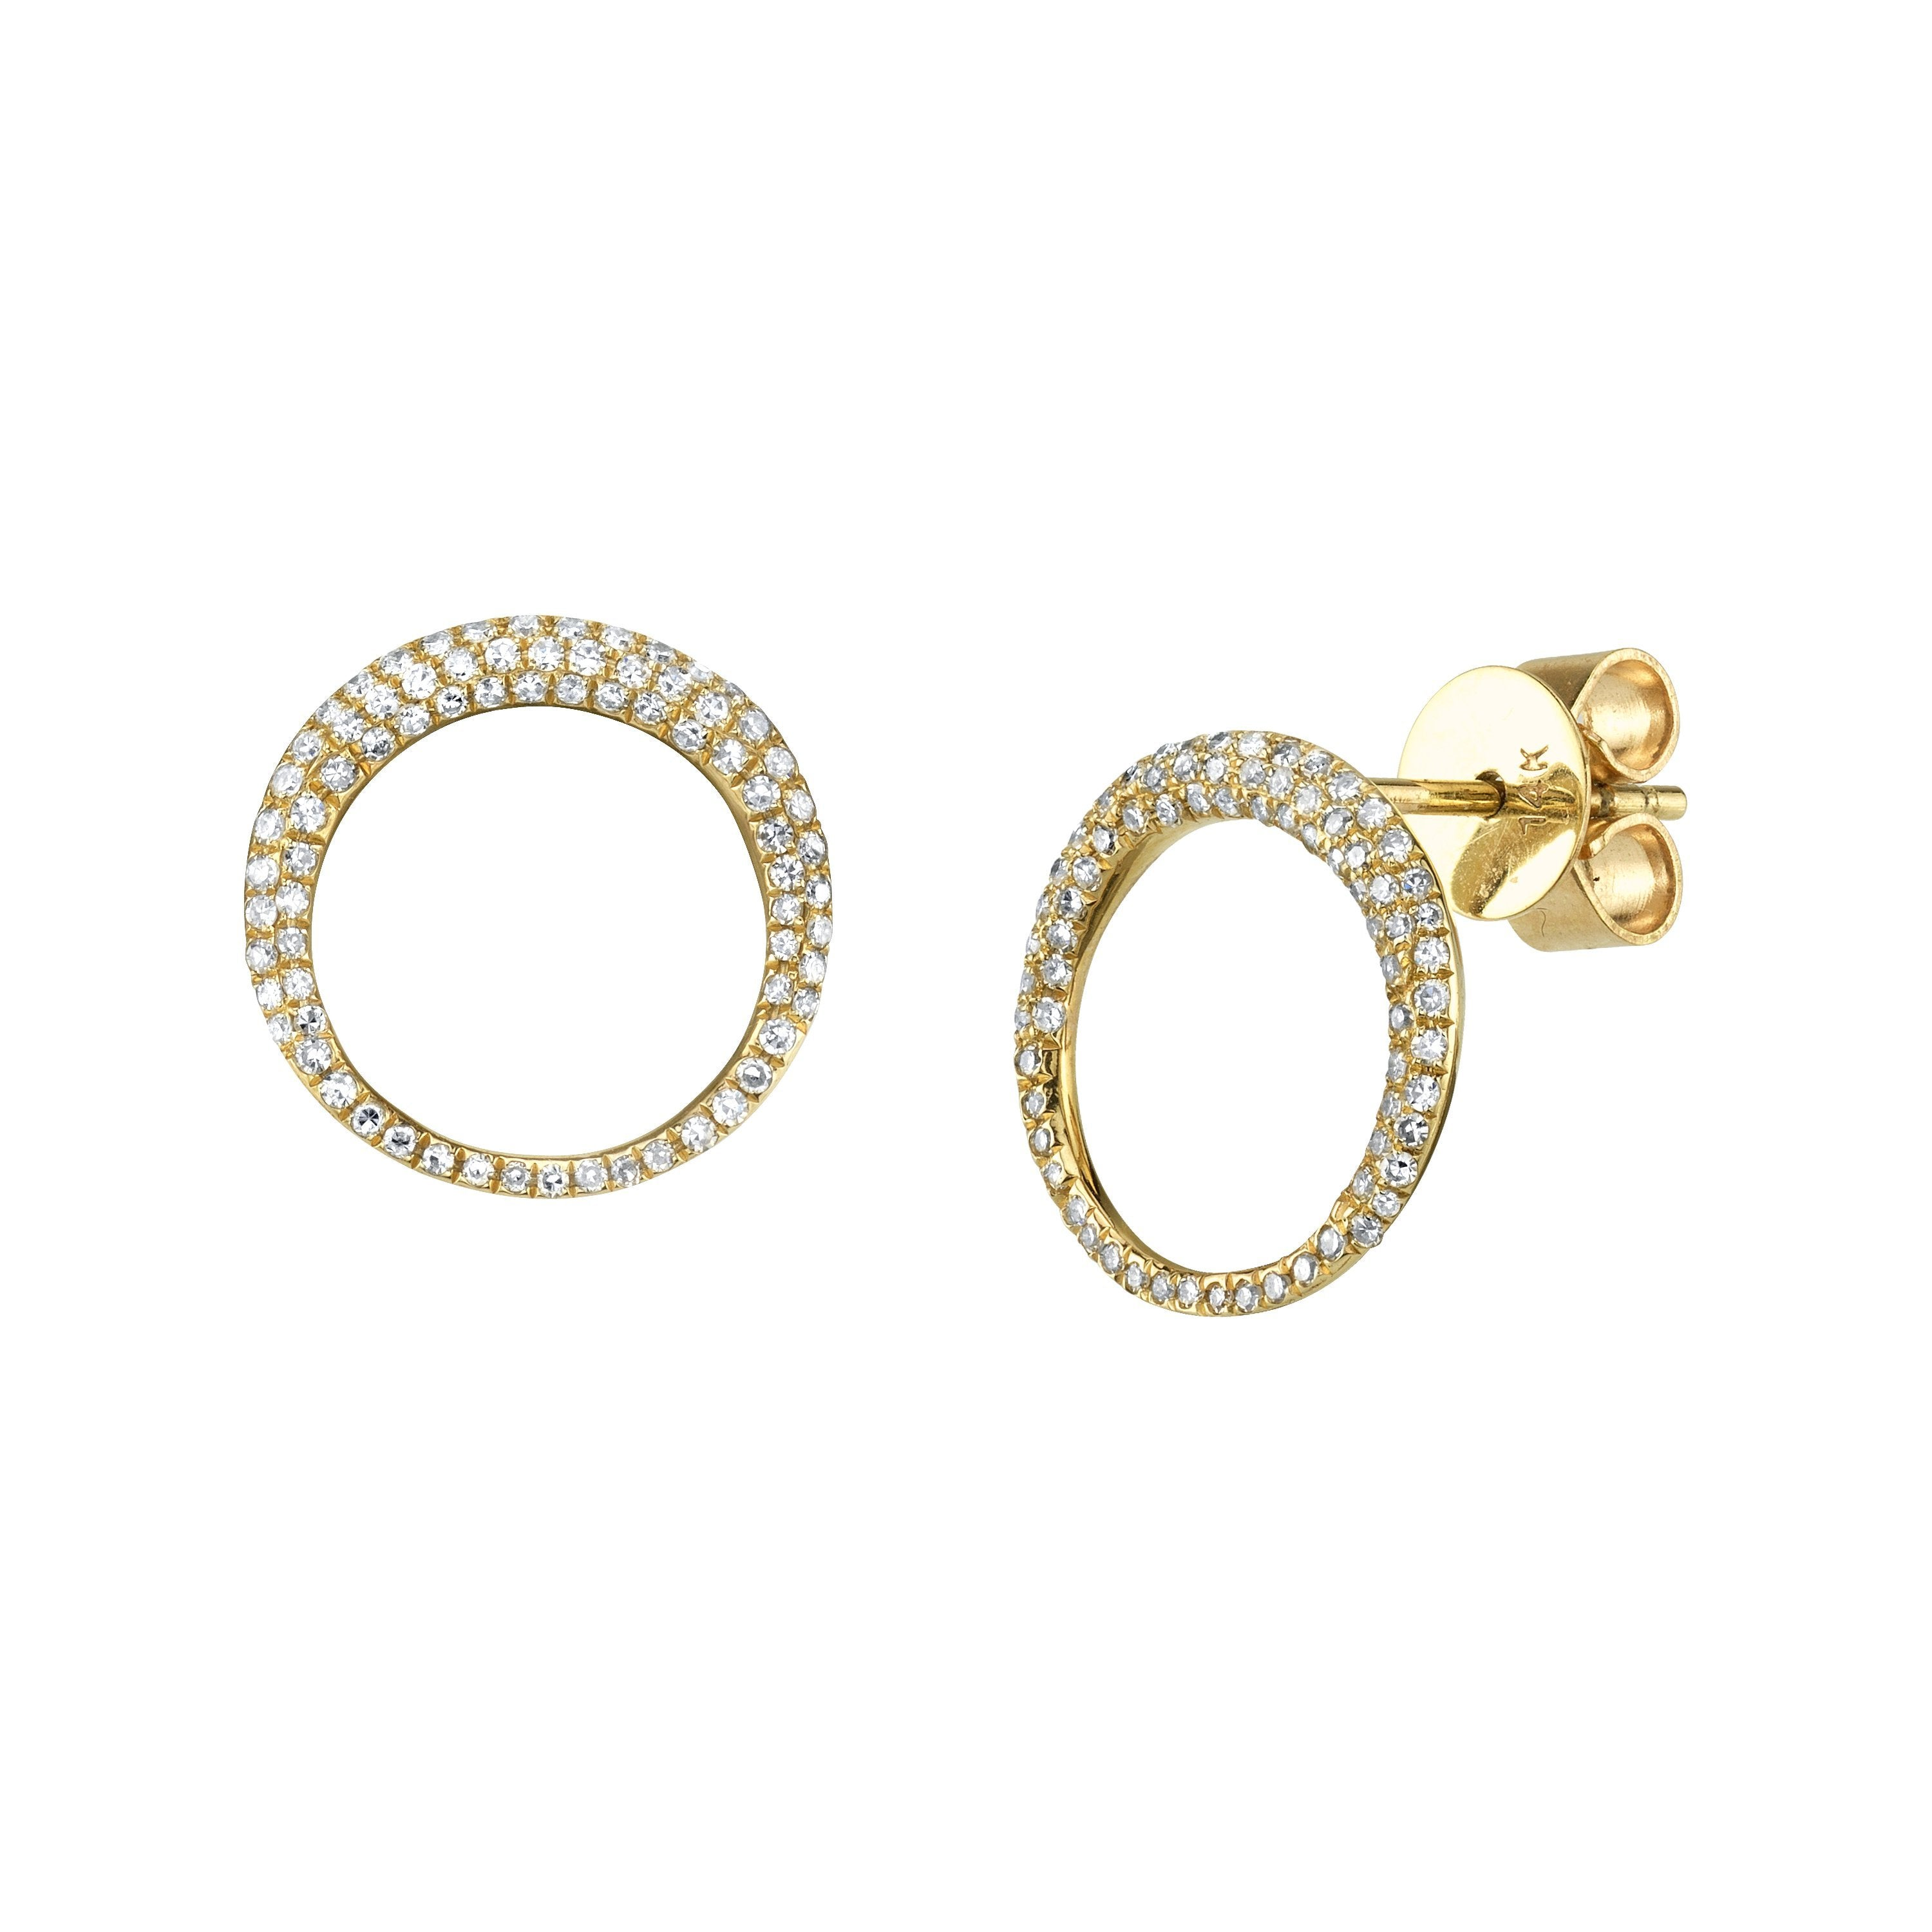 Small Balloon Earrings With White Pavé Diamonds - Gabriela Artigas